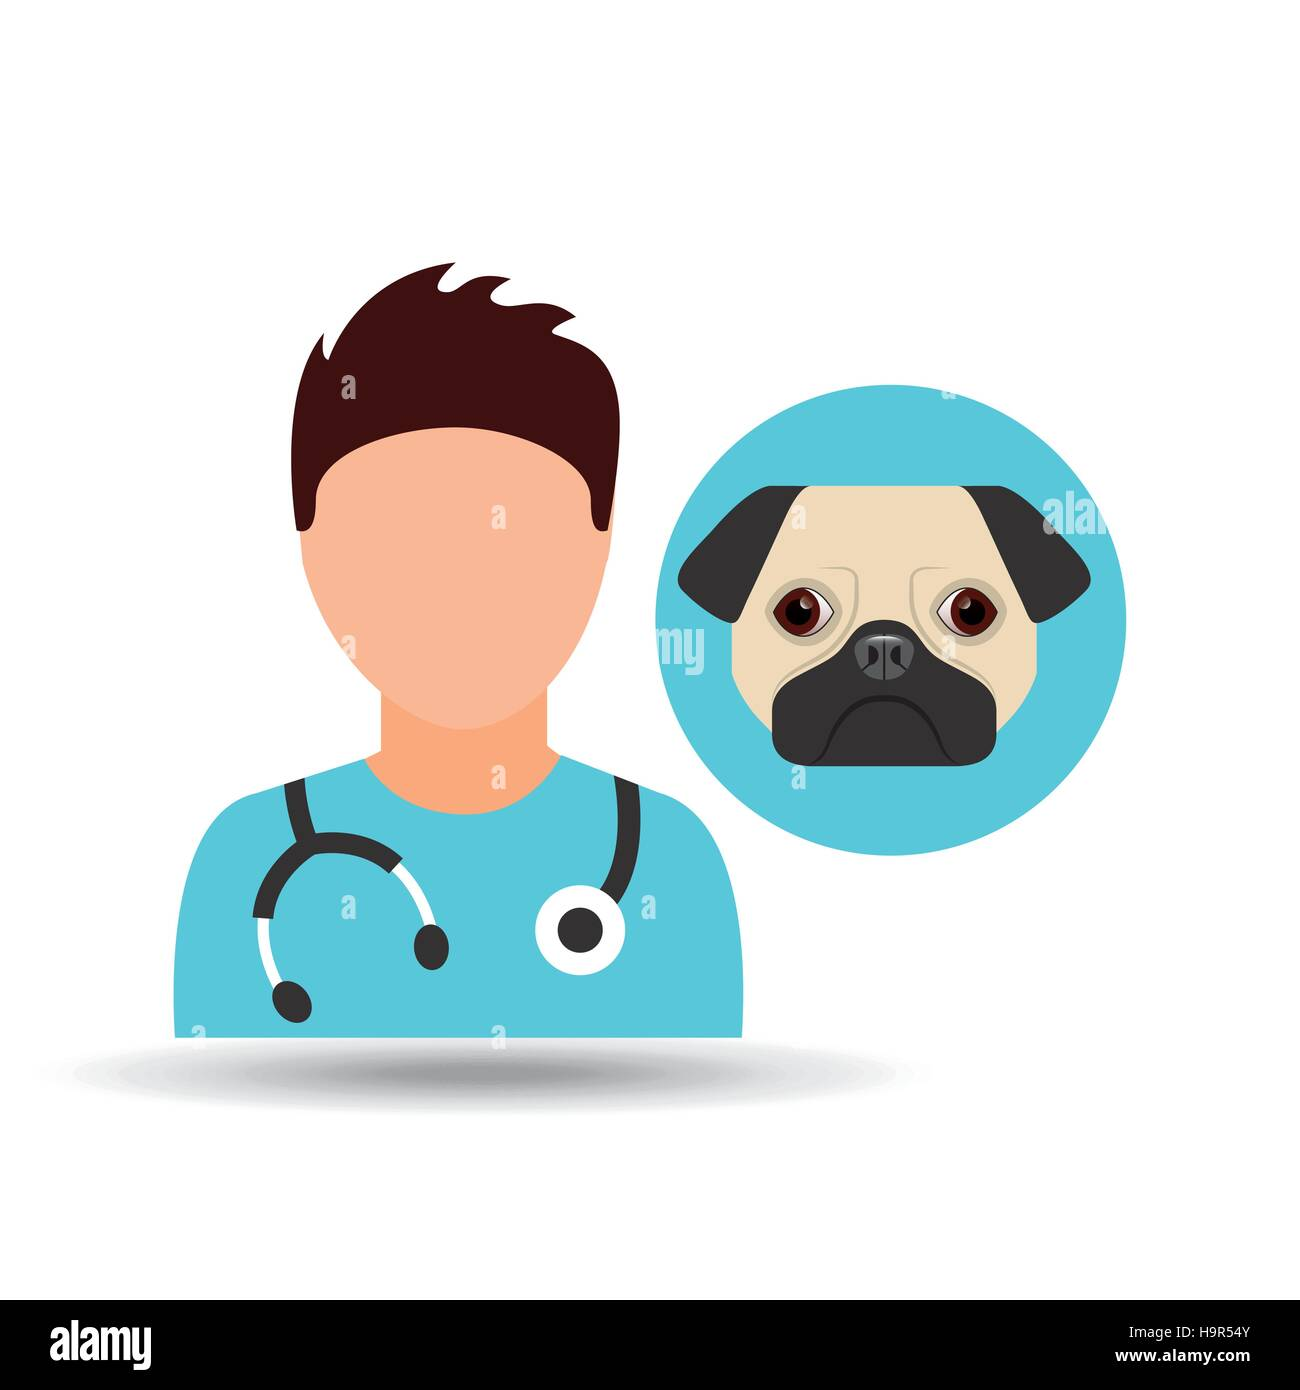 doctor cartoon veterinarian dog pug vector illustration eps 10 - Stock Image